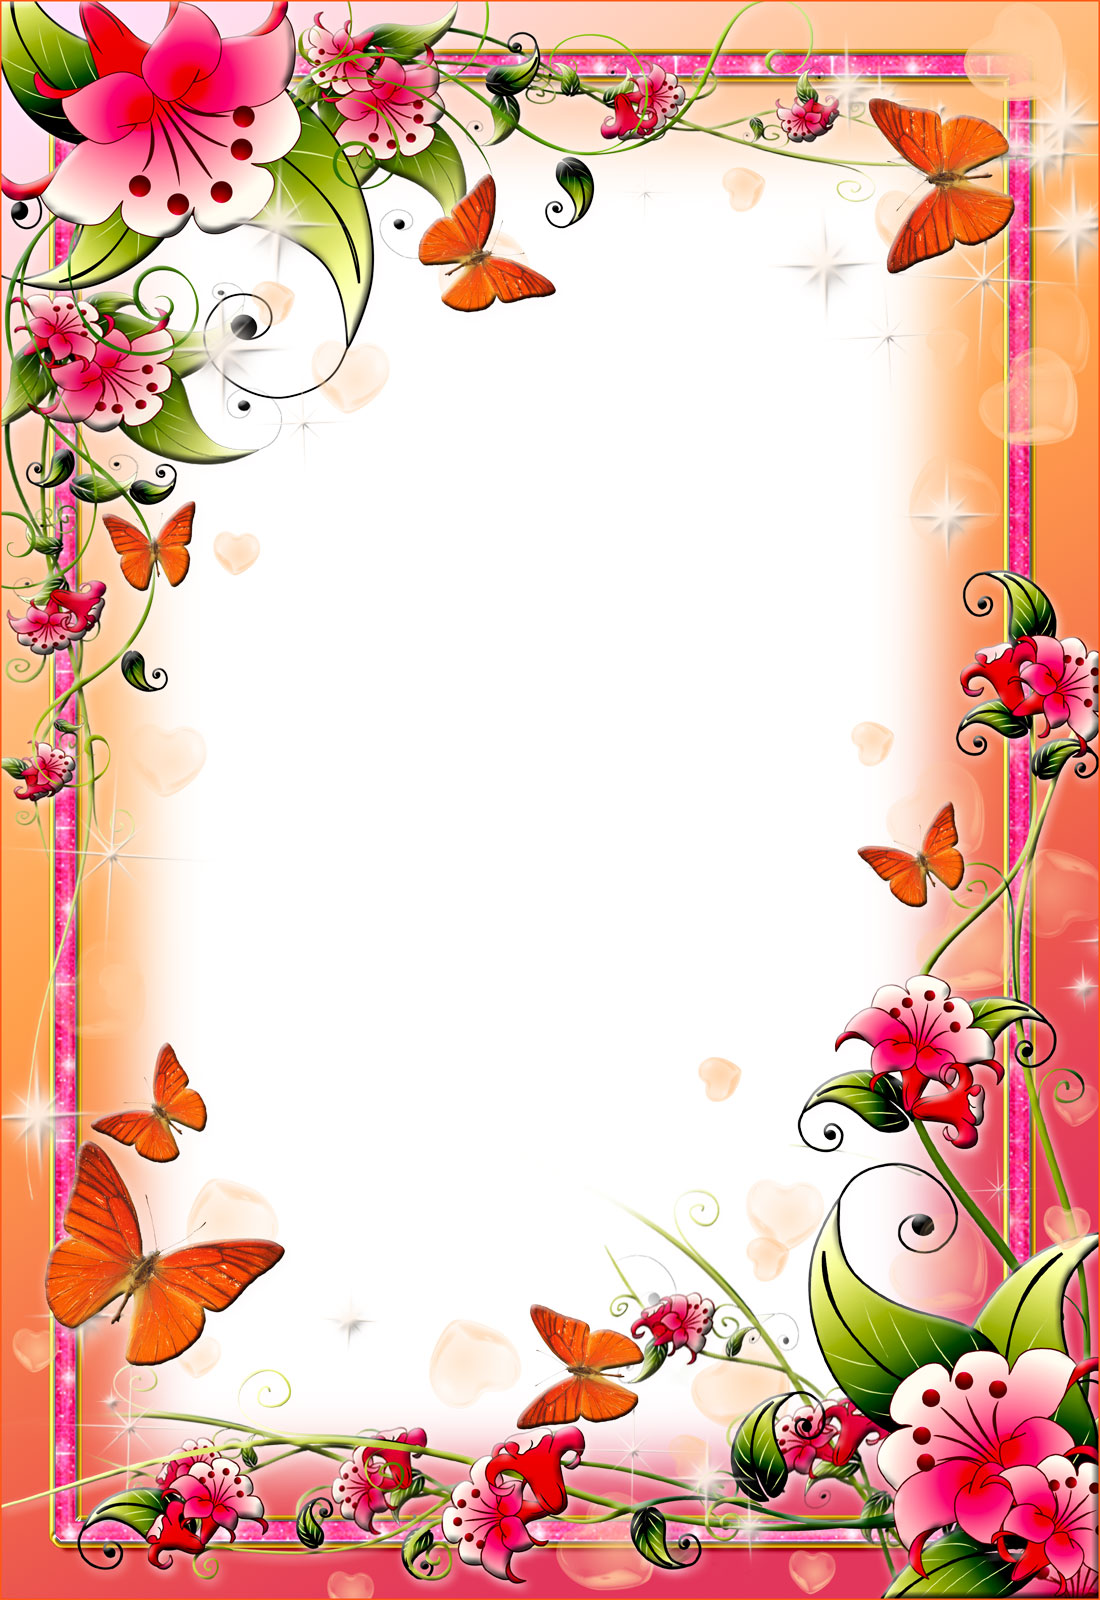 Free Download Flower Wallpaper Border Weddingdressincom 1100x1600